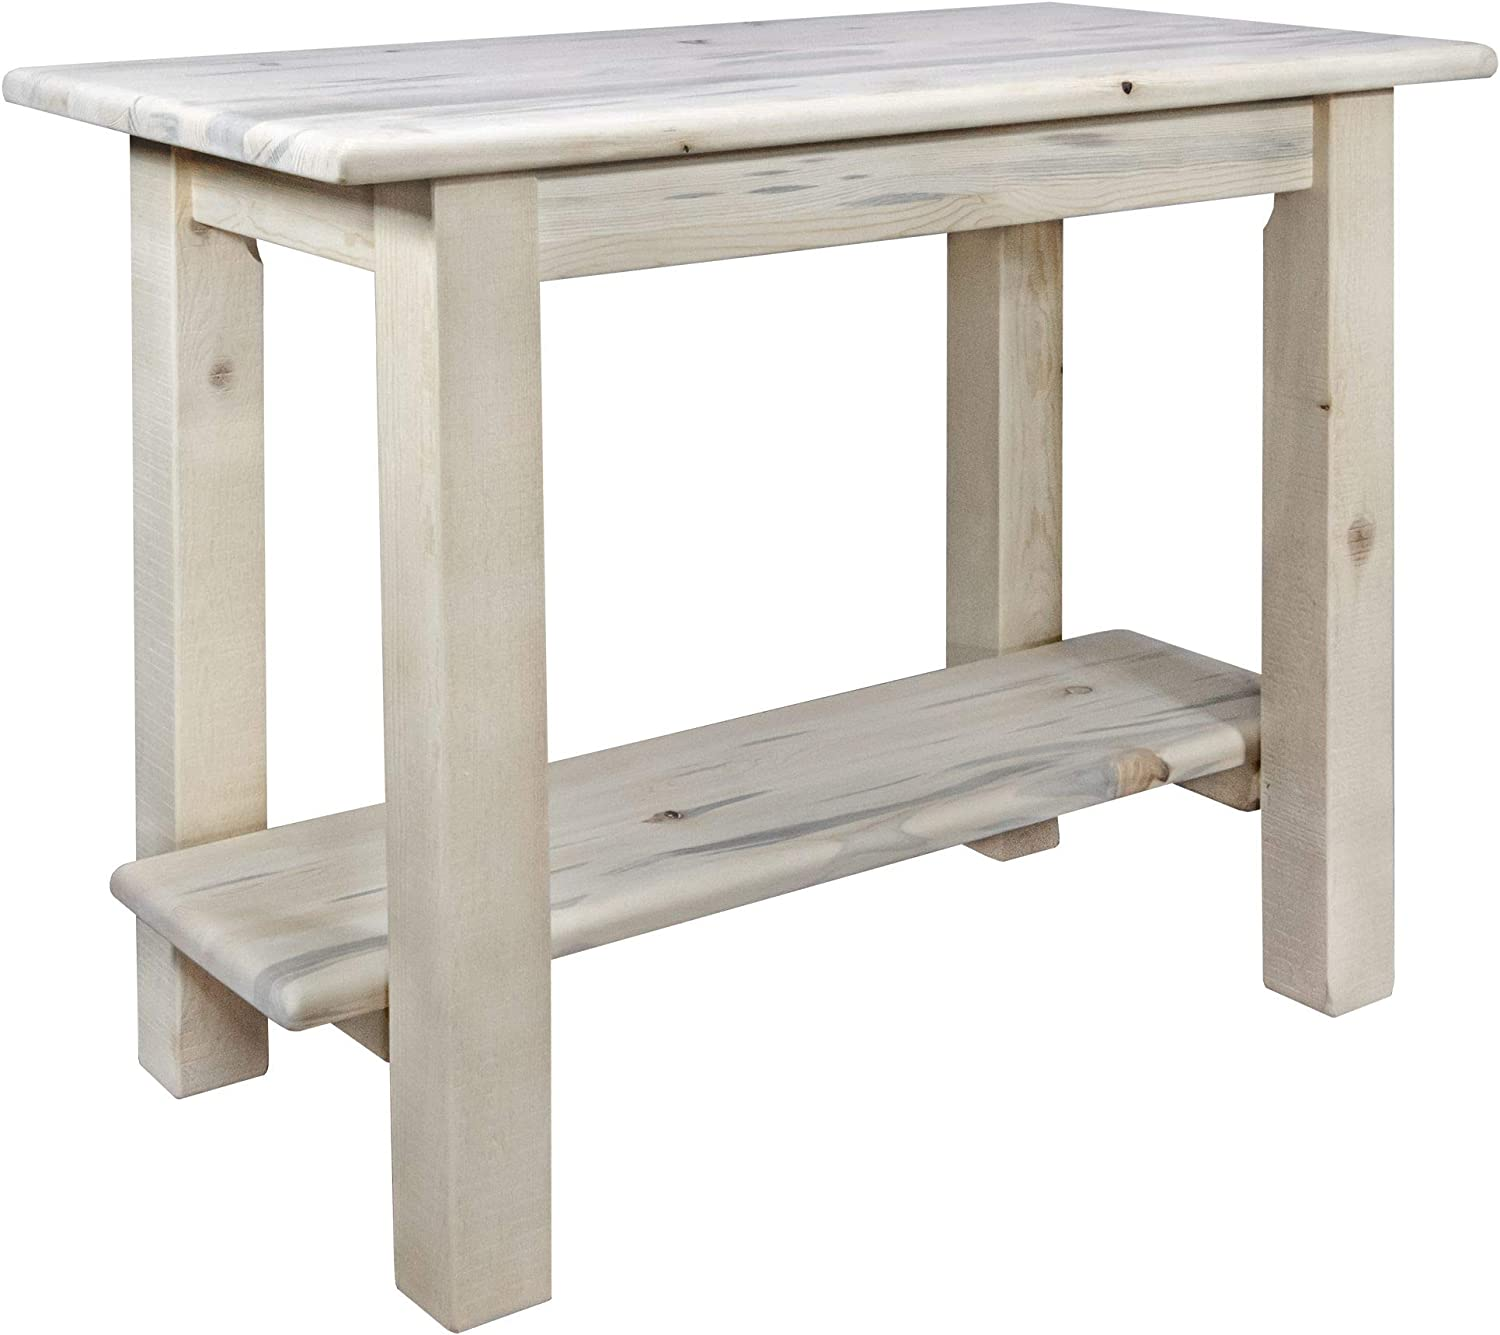 Amazon Com Montana Woodworks Homestead Collection Console Table With Shelf Ready To Finish Furniture Decor